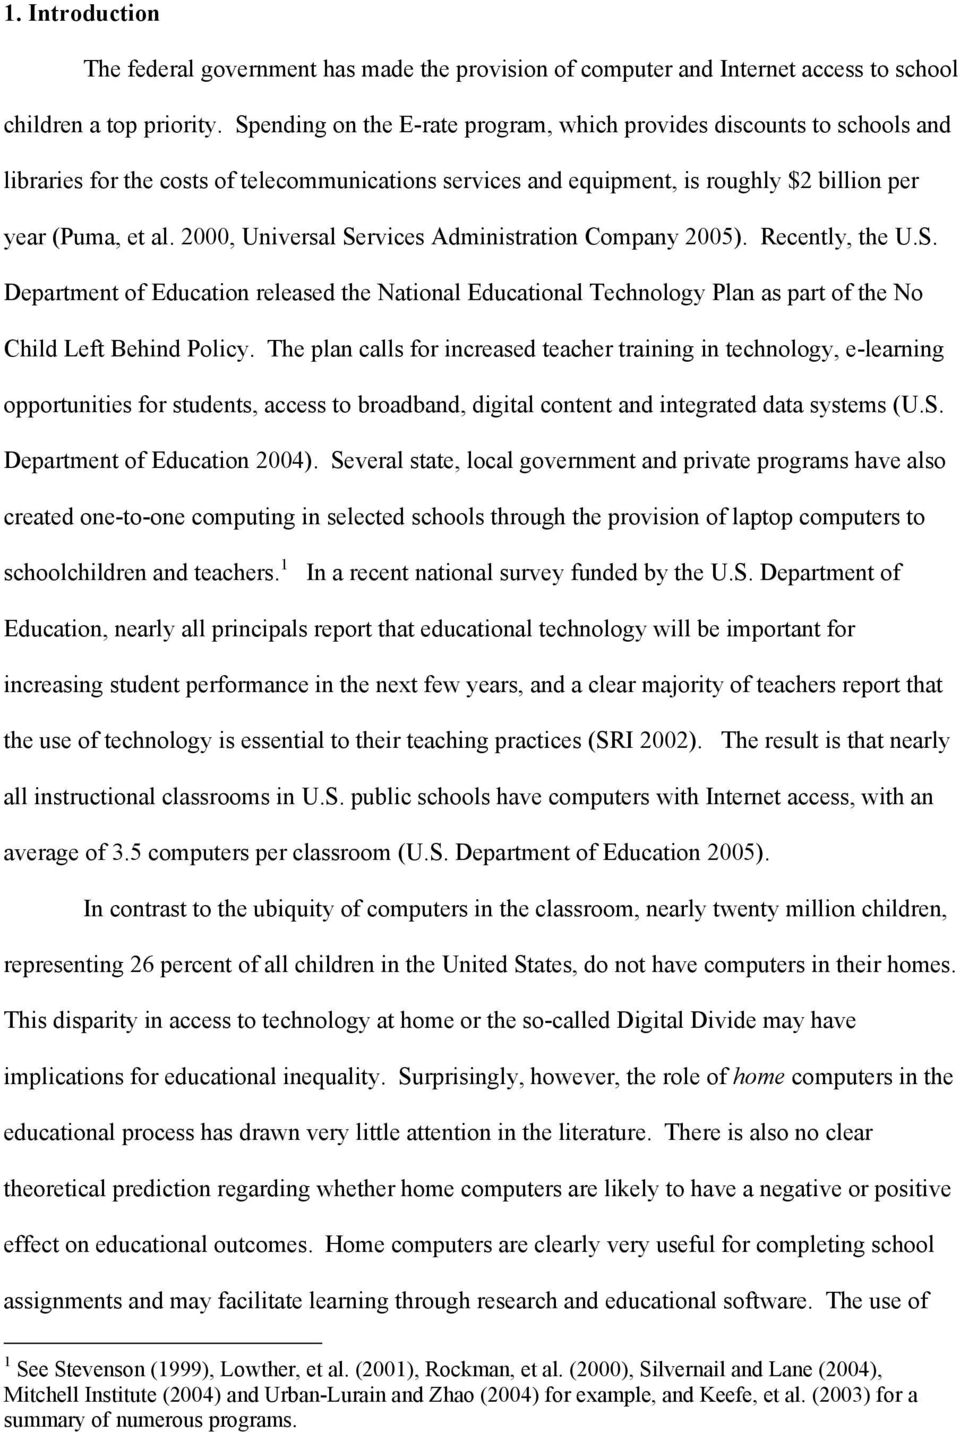 2000, Universal Services Administration Company 2005). Recently, the U.S. Department of Education released the National Educational Technology Plan as part of the No Child Left Behind Policy.